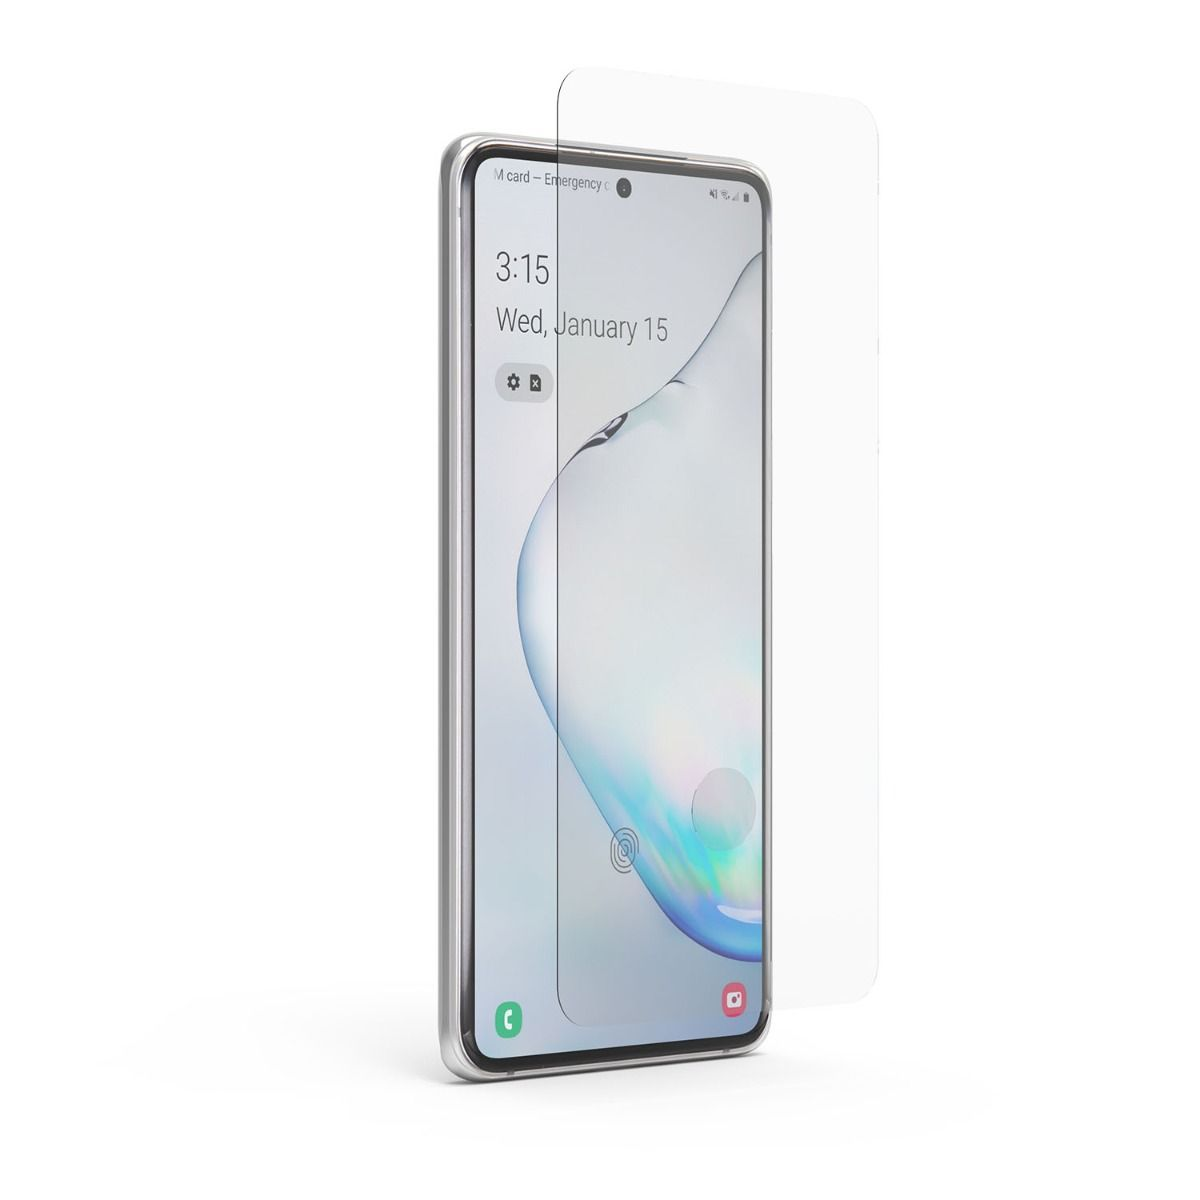 Samsung Galaxy S20 Ultra Steel 360 Curved Glass Fingerprint Sensor Ready Screen Protector with Alignment Tray and Pure Pledge up to $100